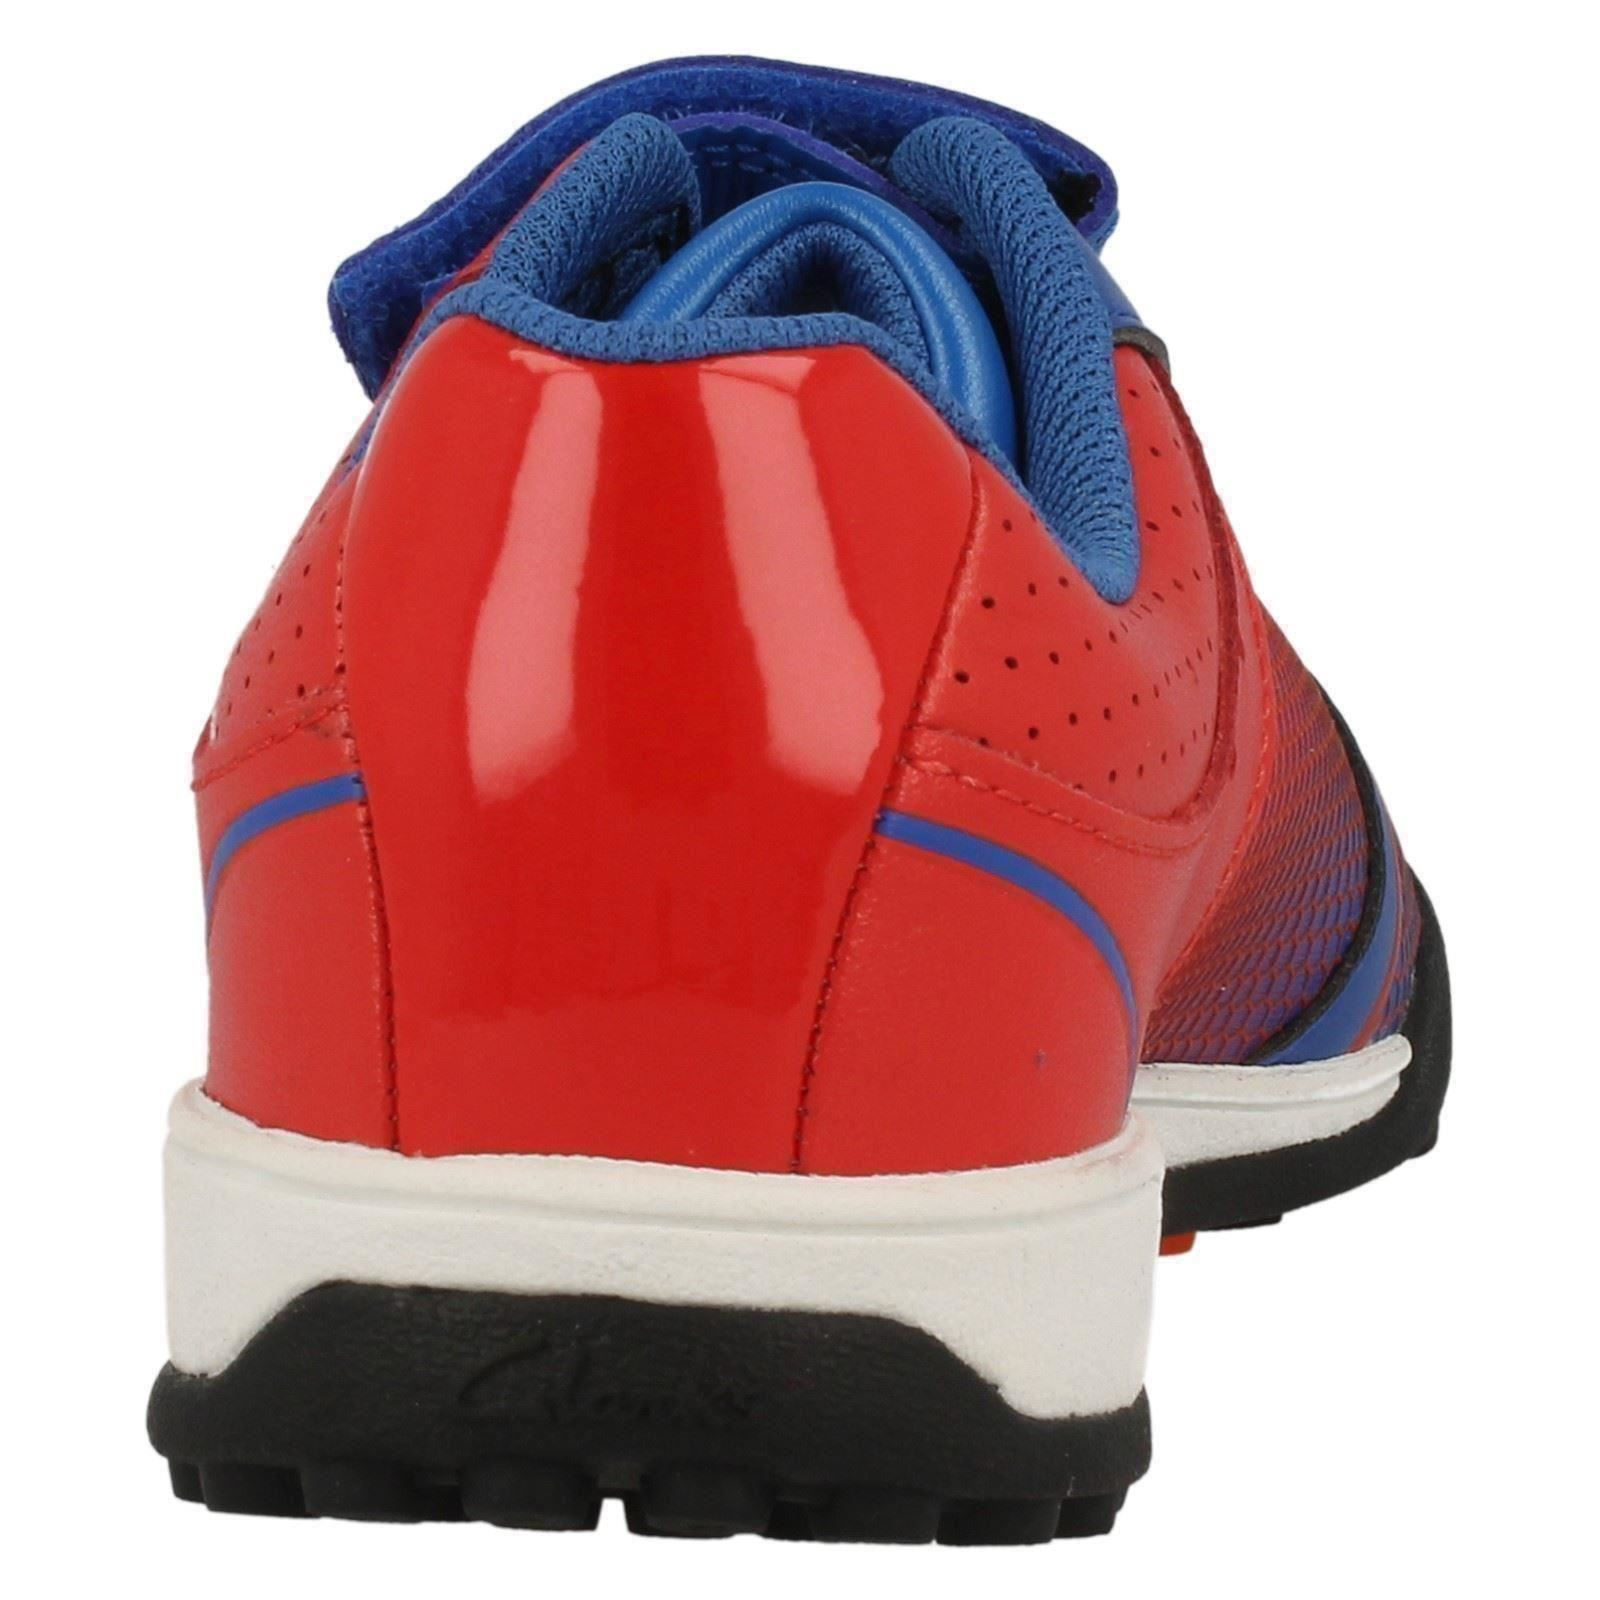 Cica by Clarks Boys Trainers In Goal